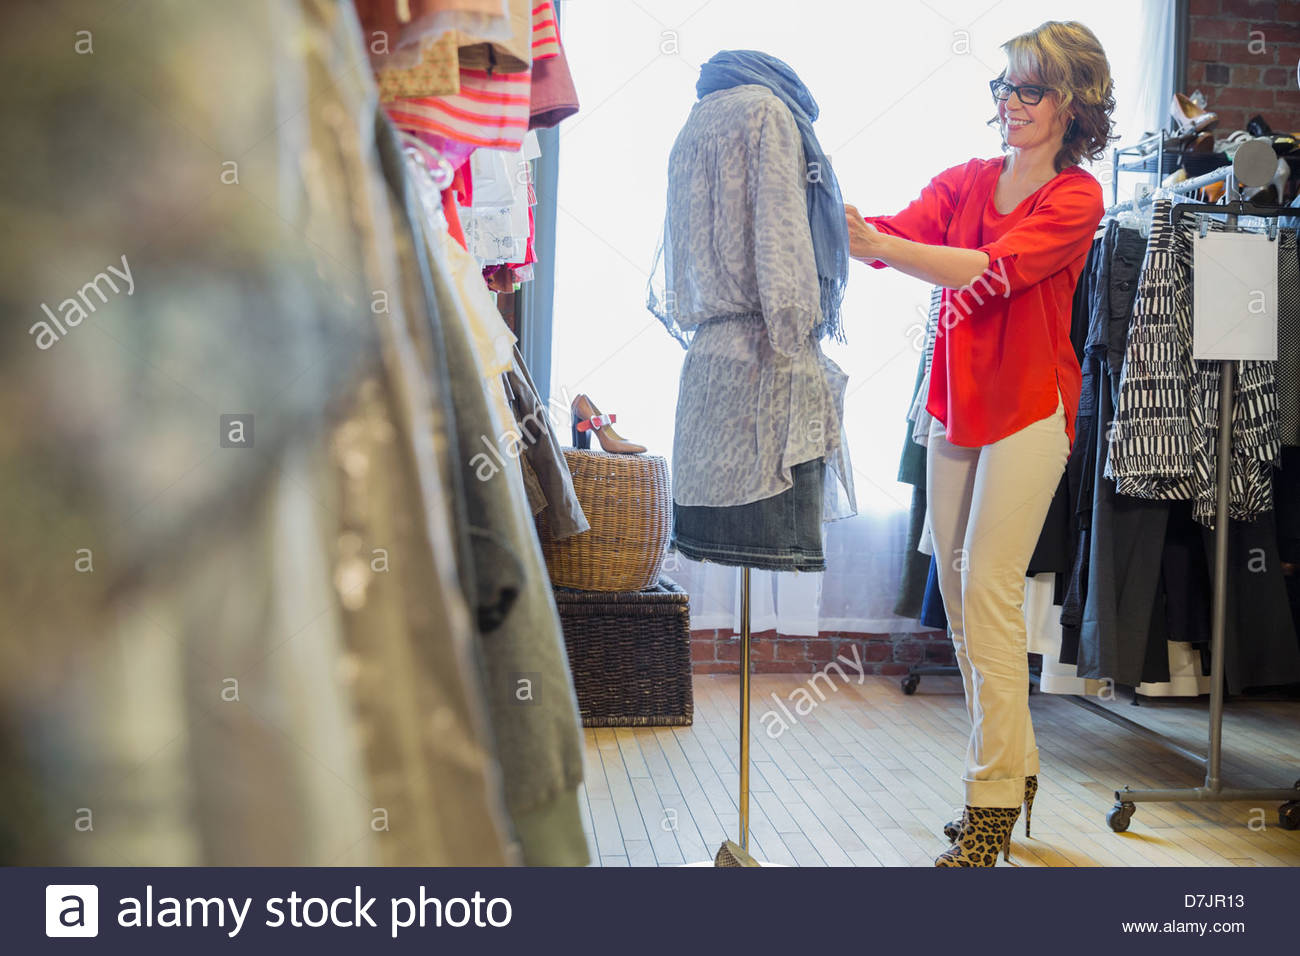 Female small business owner dressing mannequin in store - Stock Image